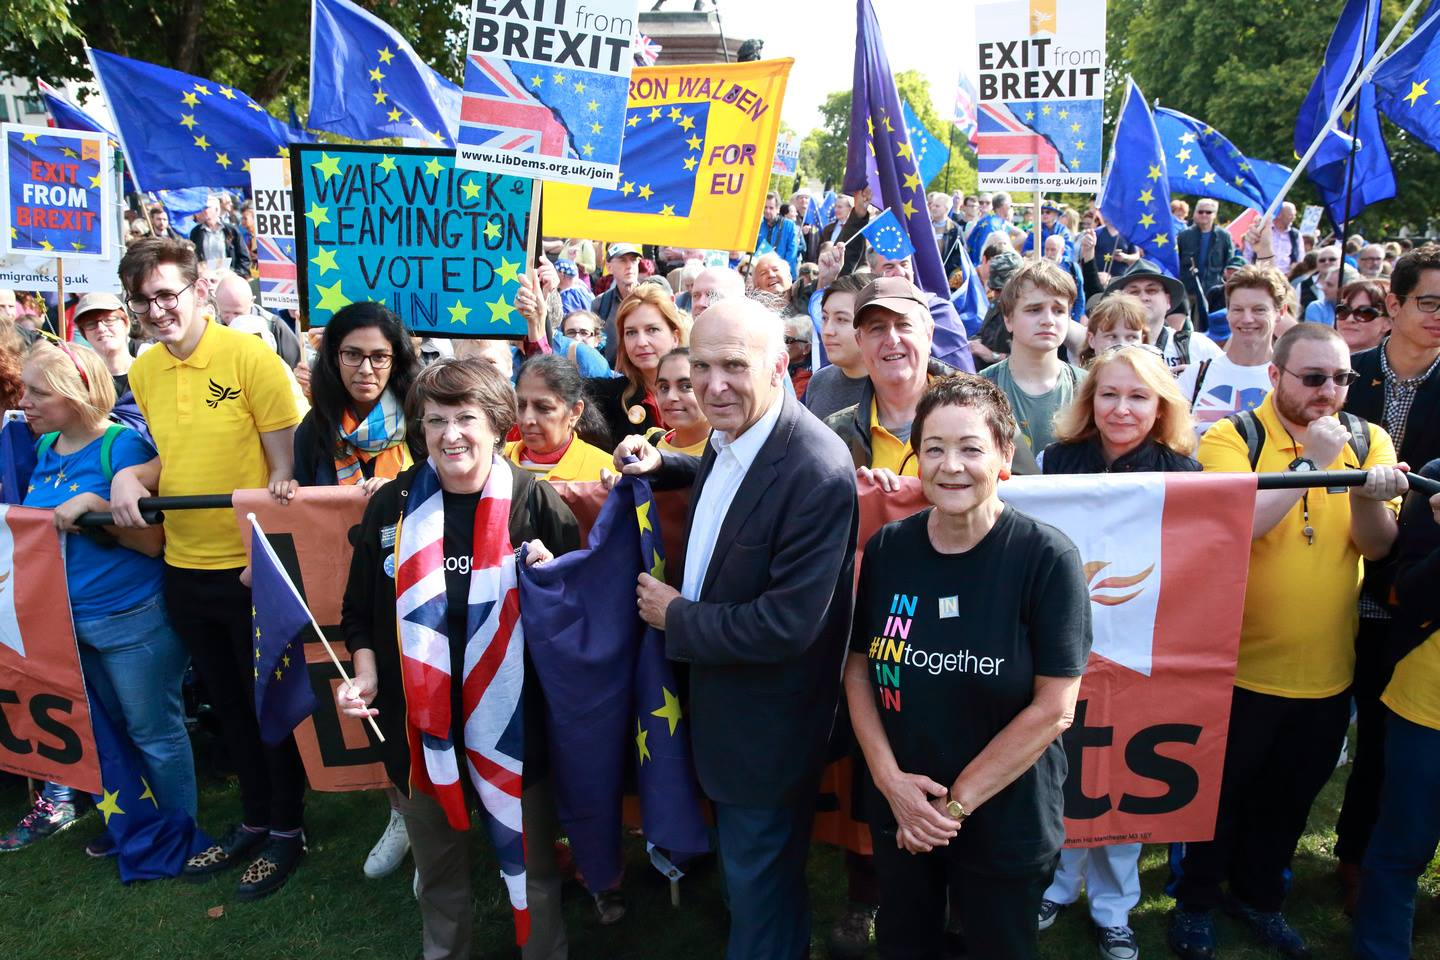 Lib Dems march for Exit from Brexit